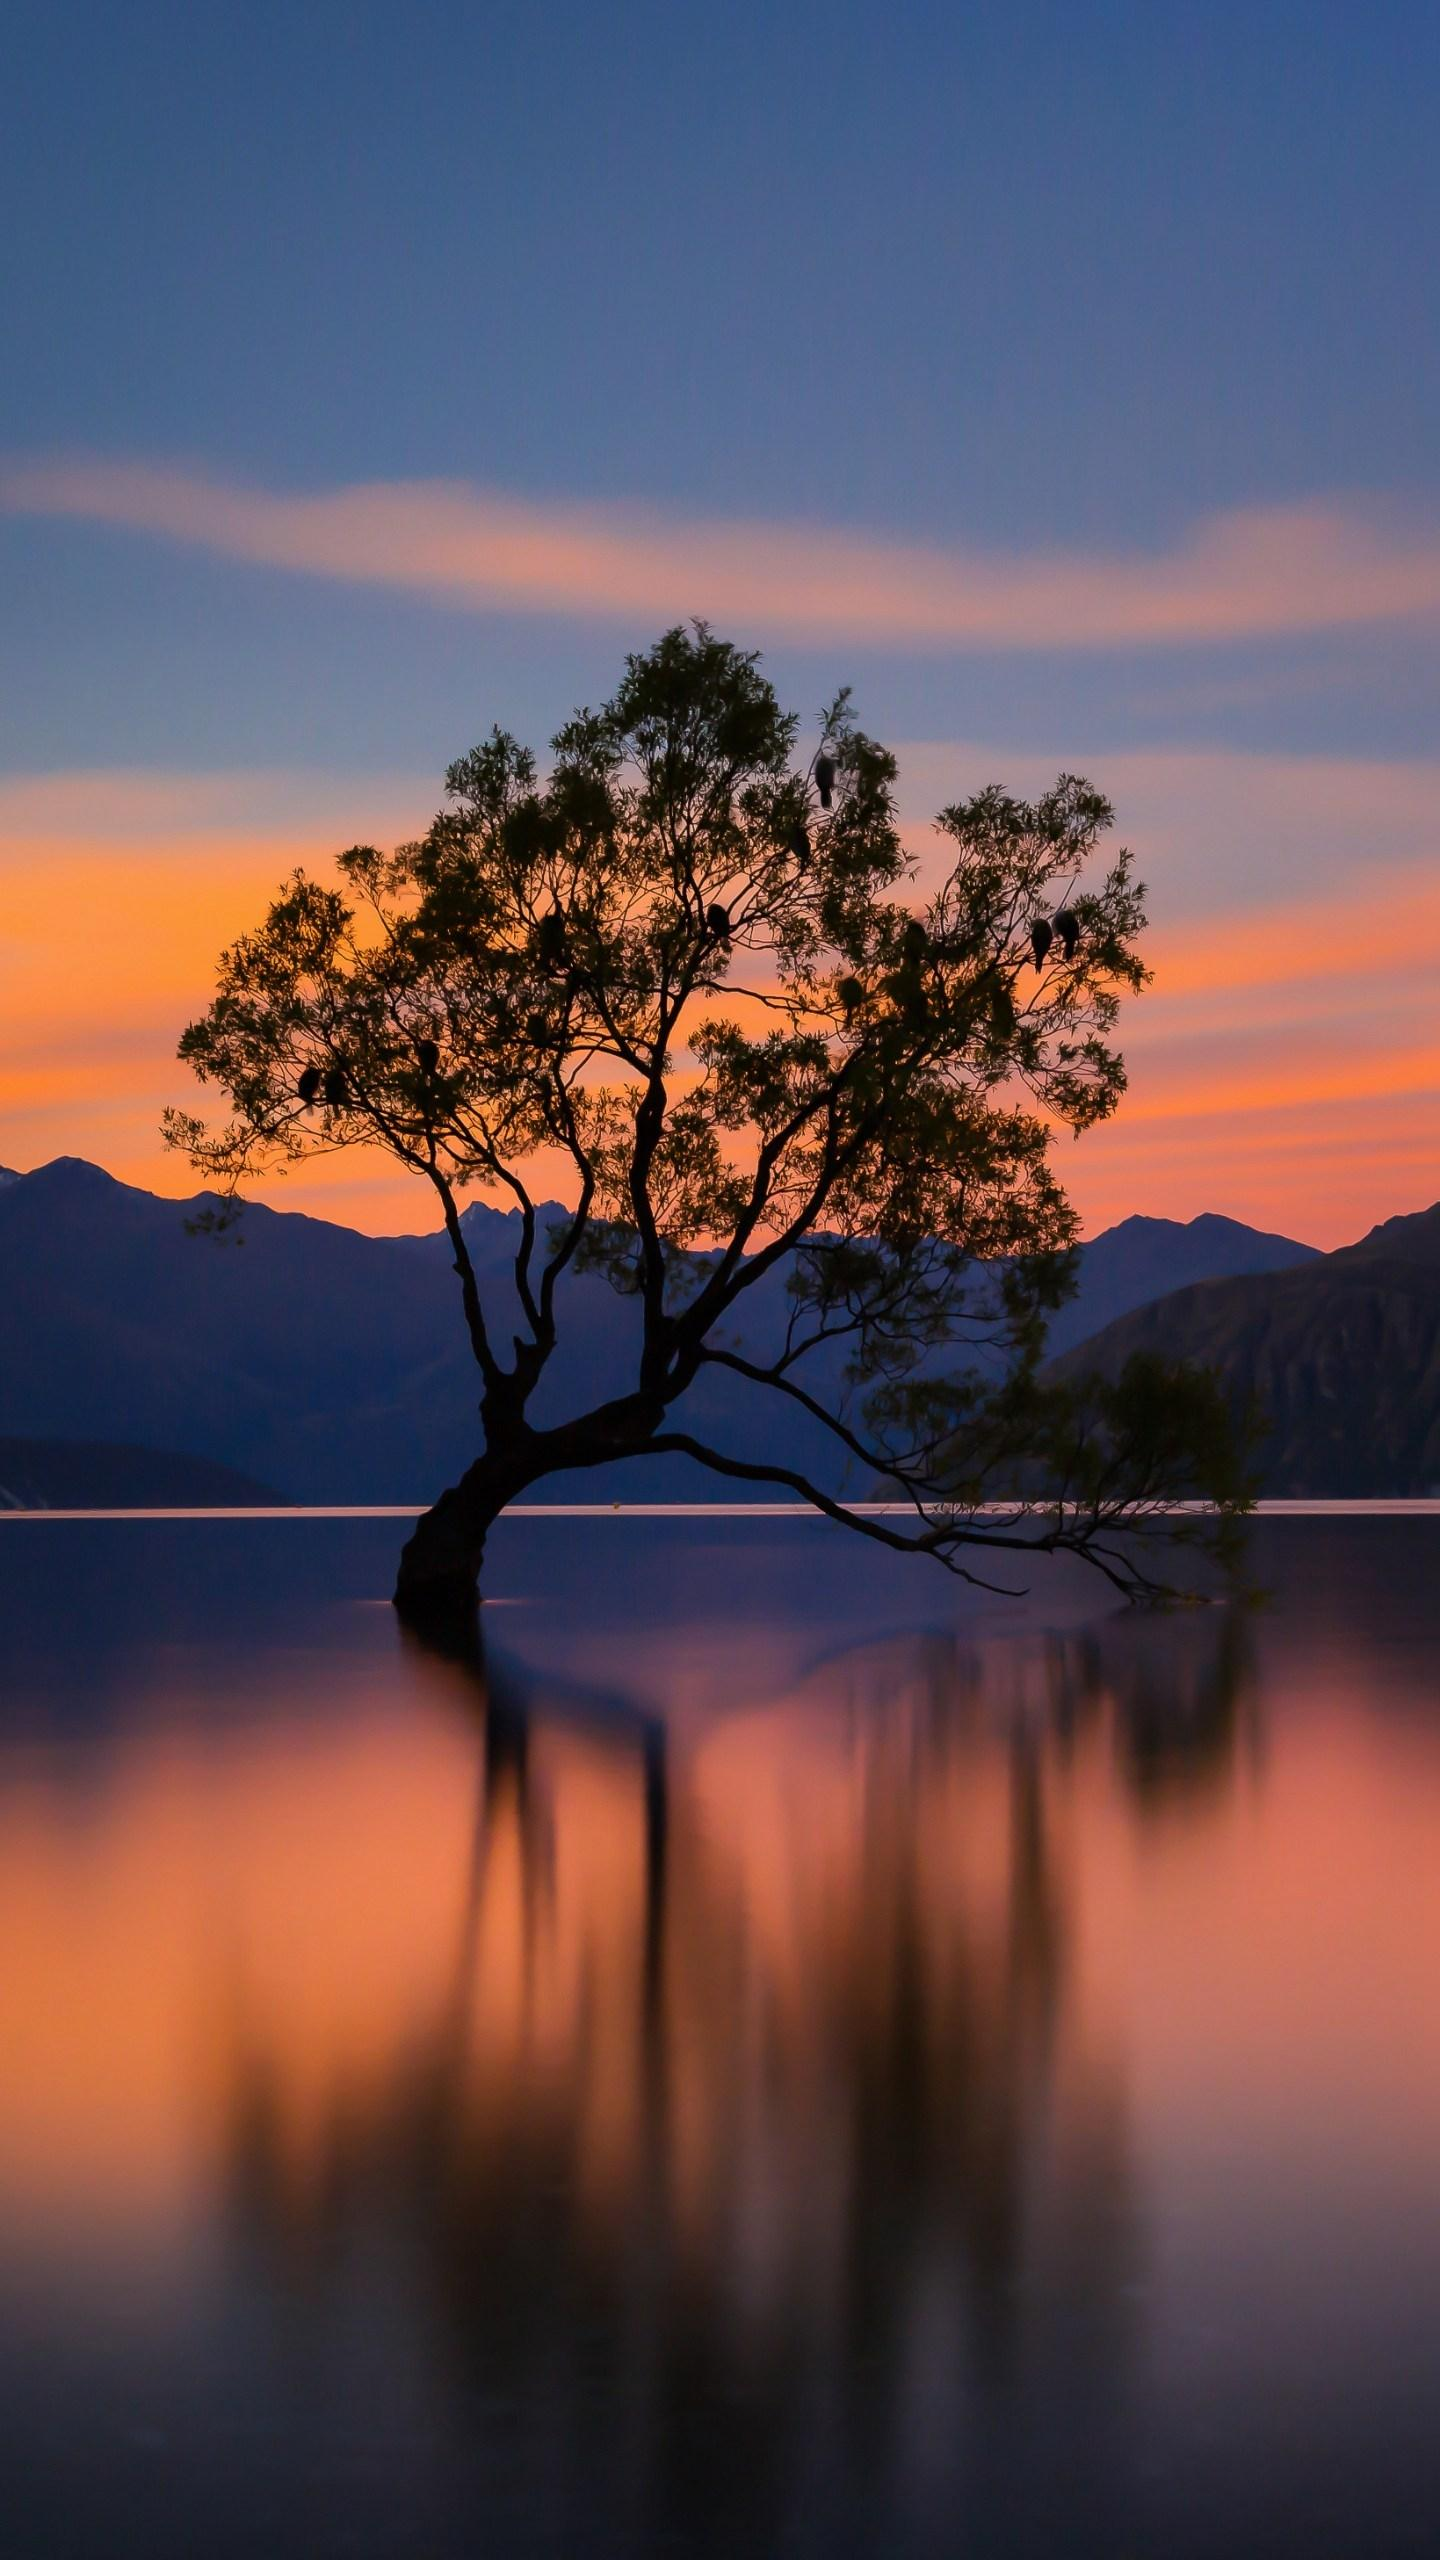 Lonely tree in Lake Wanaka. The most famous of Wanaka is the tree in Lake Wanaka, which grows alone in the center of the lake, swaying the tranquility of the lake. ©图虫创意